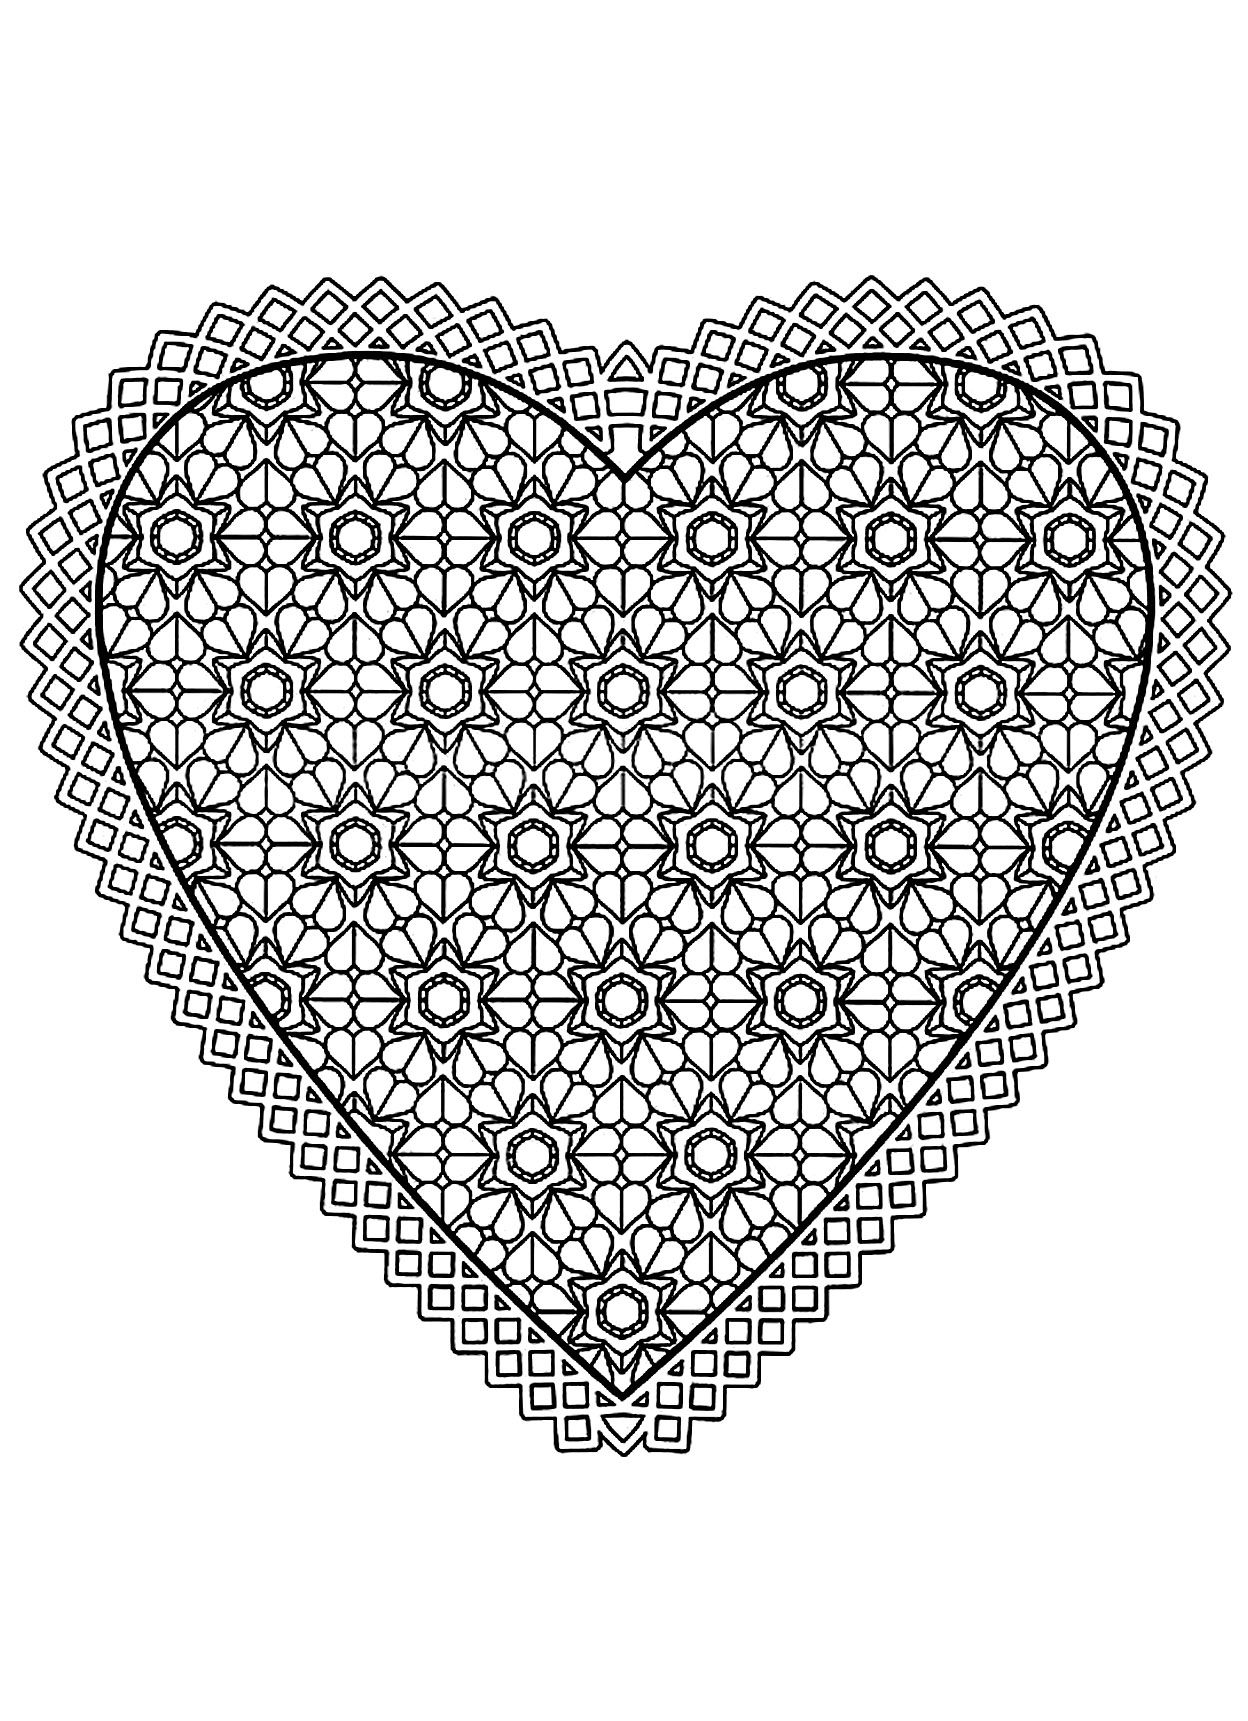 Free Mandala Difficult Adult To Print Heart Coloring Pages Printable And Book For Find More Online Kids